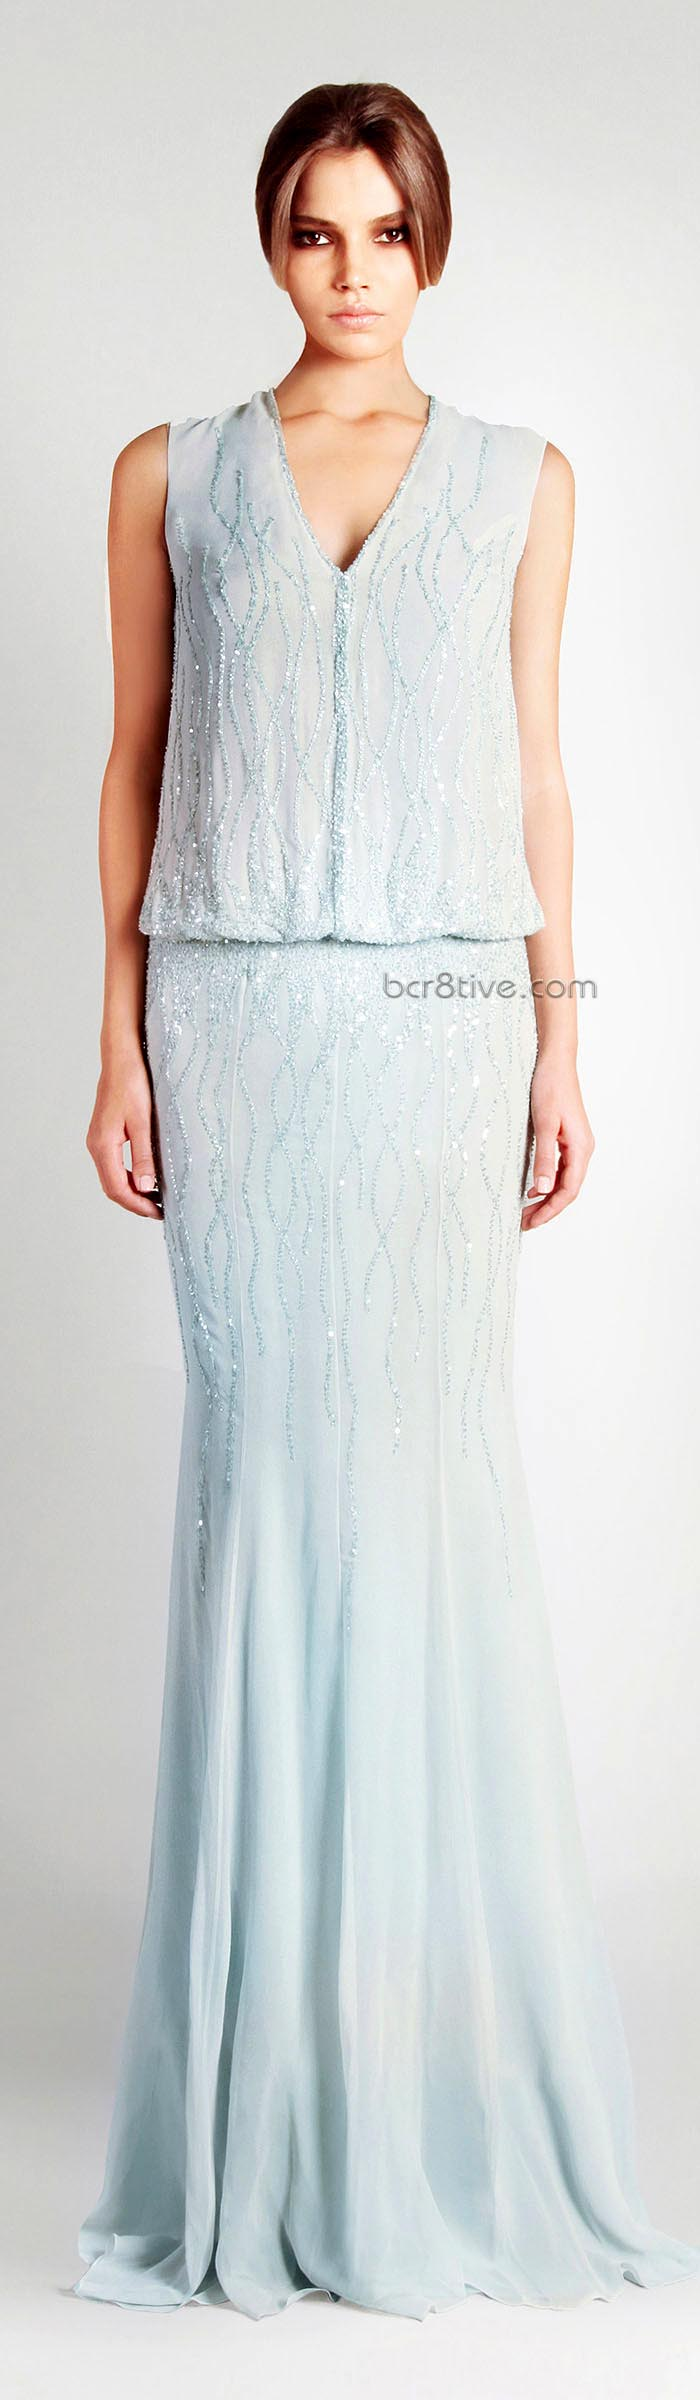 Georges Hobeika SS 2013 RTW Signature Collection